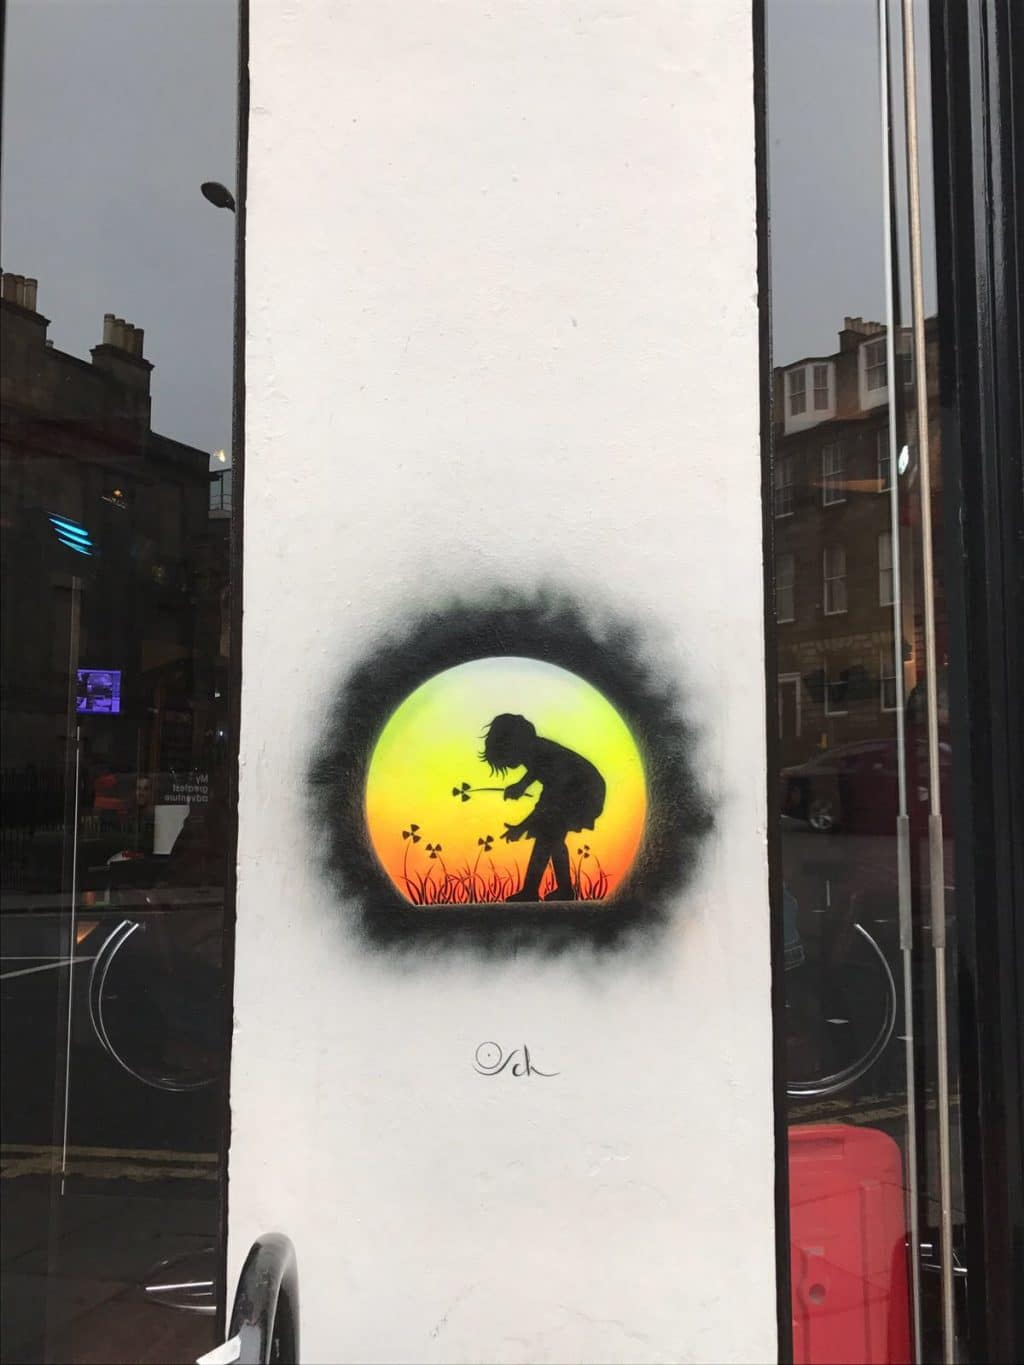 New artworks in Edinburgh